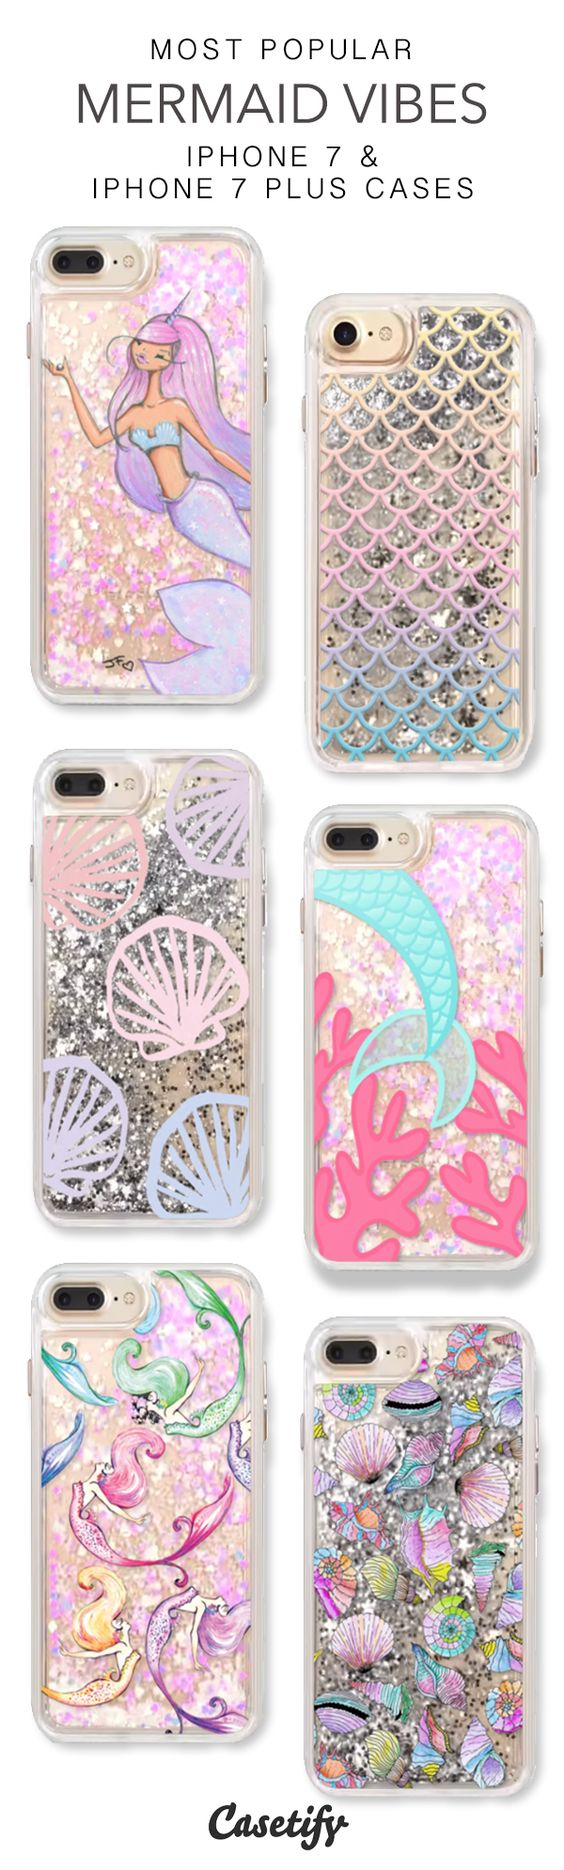 Most Popular Mermaid Vibes iPhone 7 Cases & iPhone 7 Plus Cases. More glitter iPhone case here > https://www.casetify.com/en_US/collections/iphone-7-glitter-cases#/: